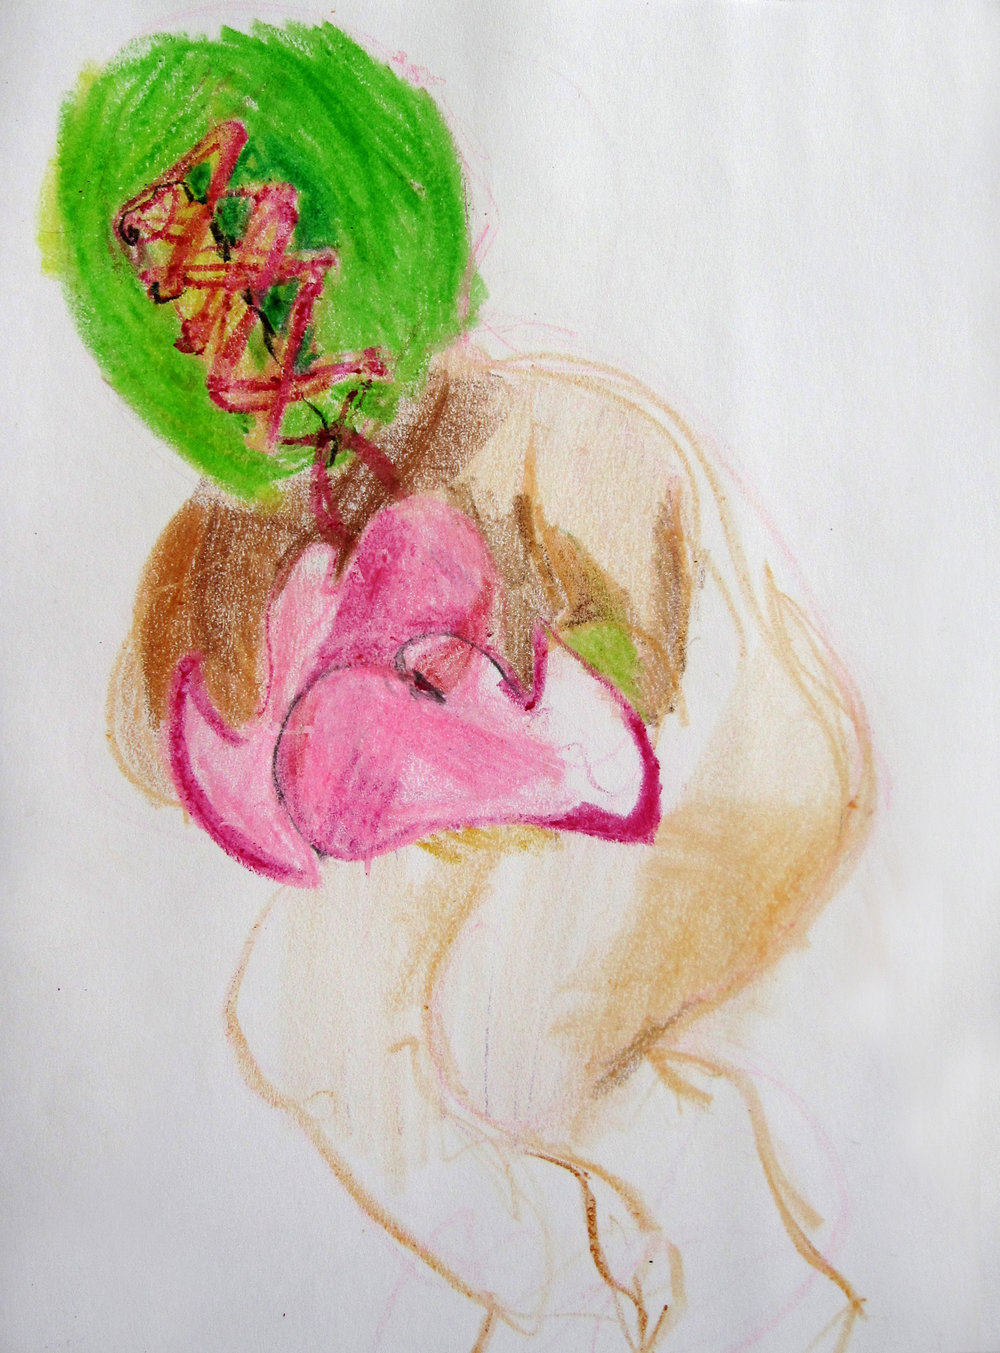 Lucha 13, 2008, Crayon on paper, 14 X11 in.